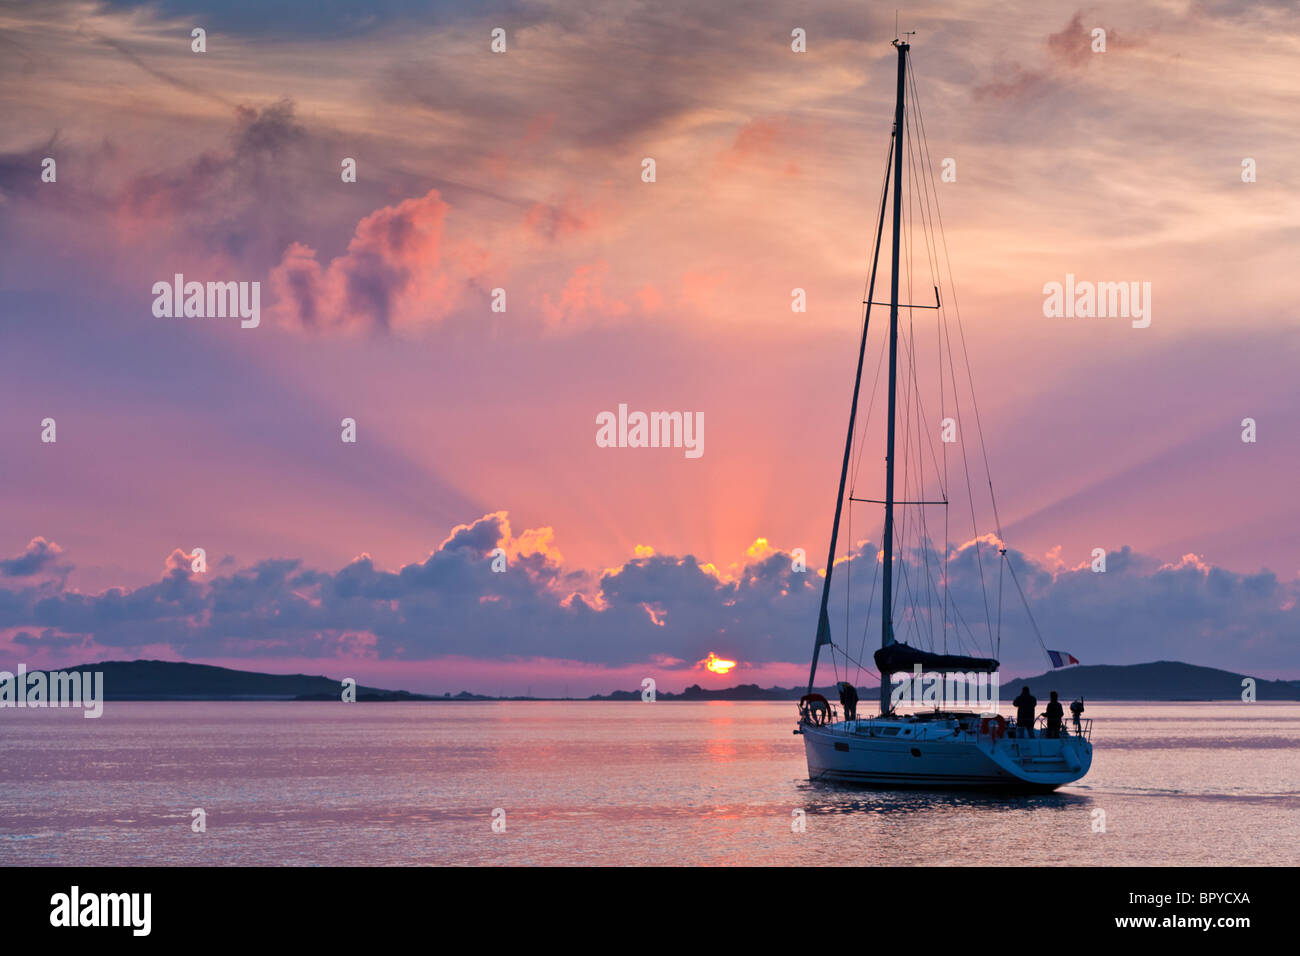 Yacht Silhouette at sunset locking towards Sampson and Tresco Isles of Scilly UK - Stock Image